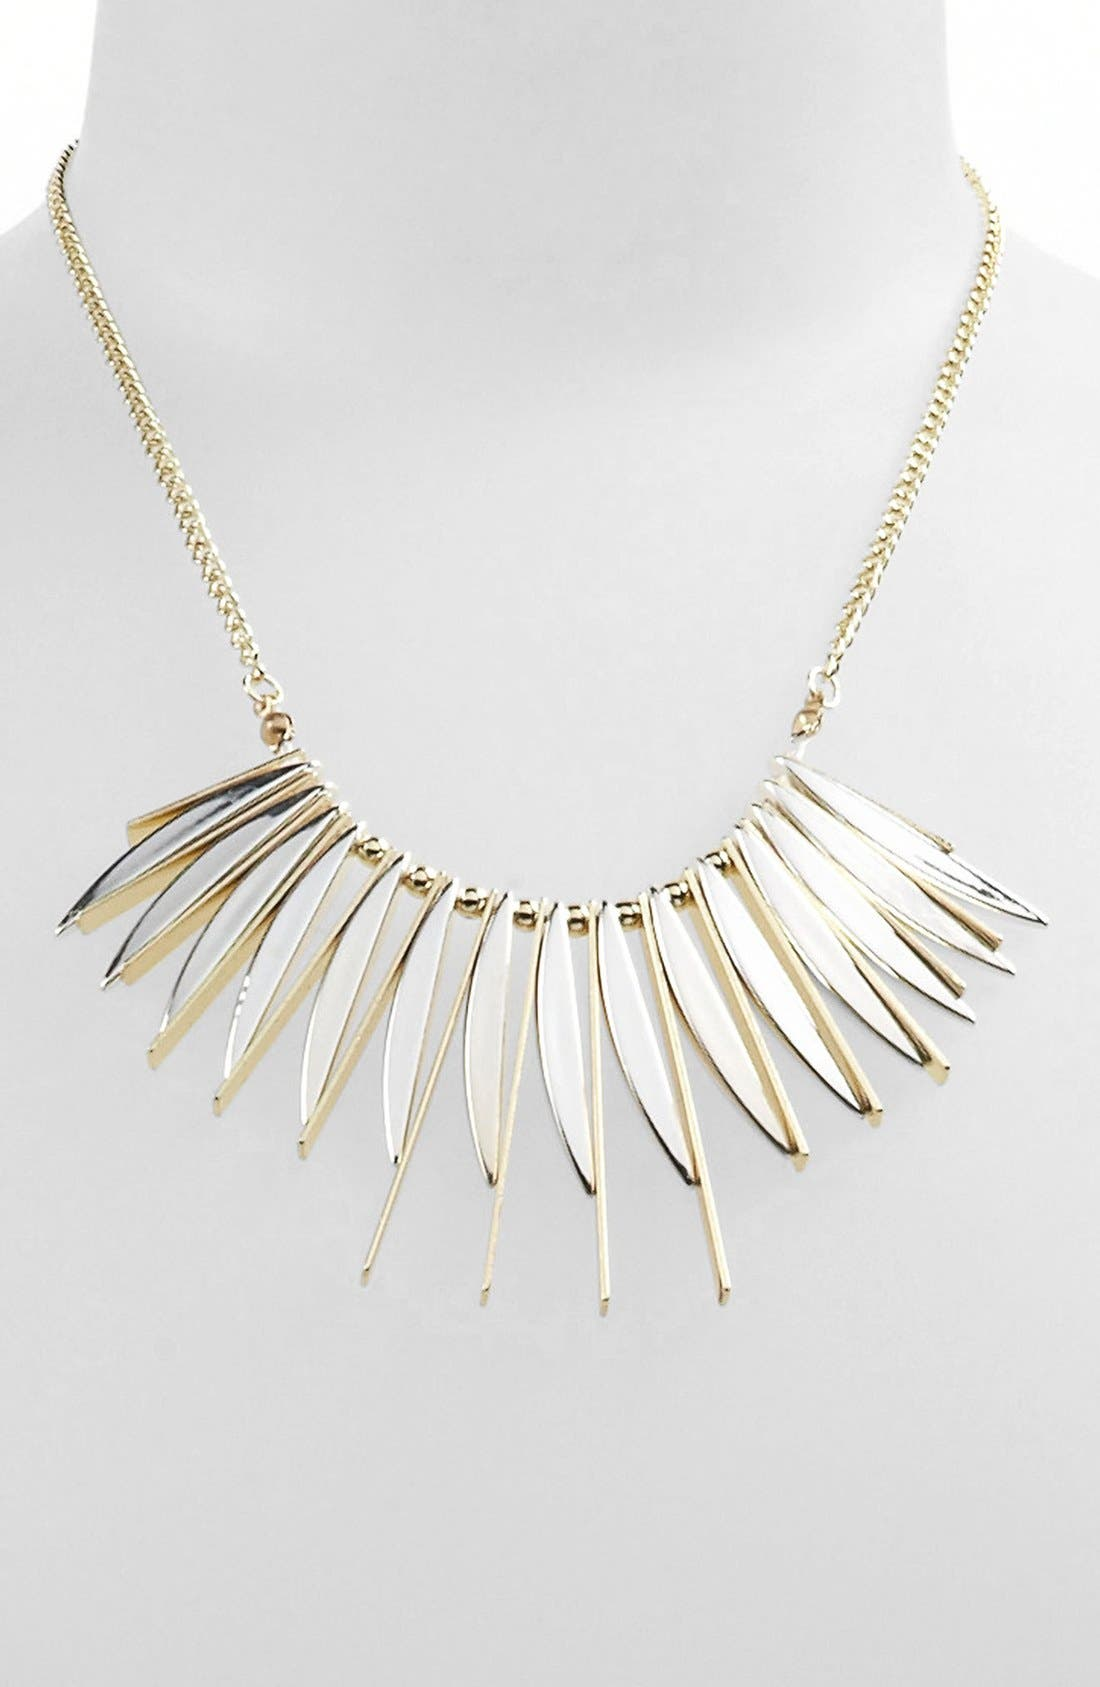 Main Image - Carole Spiked Necklace (Online Exclusive)